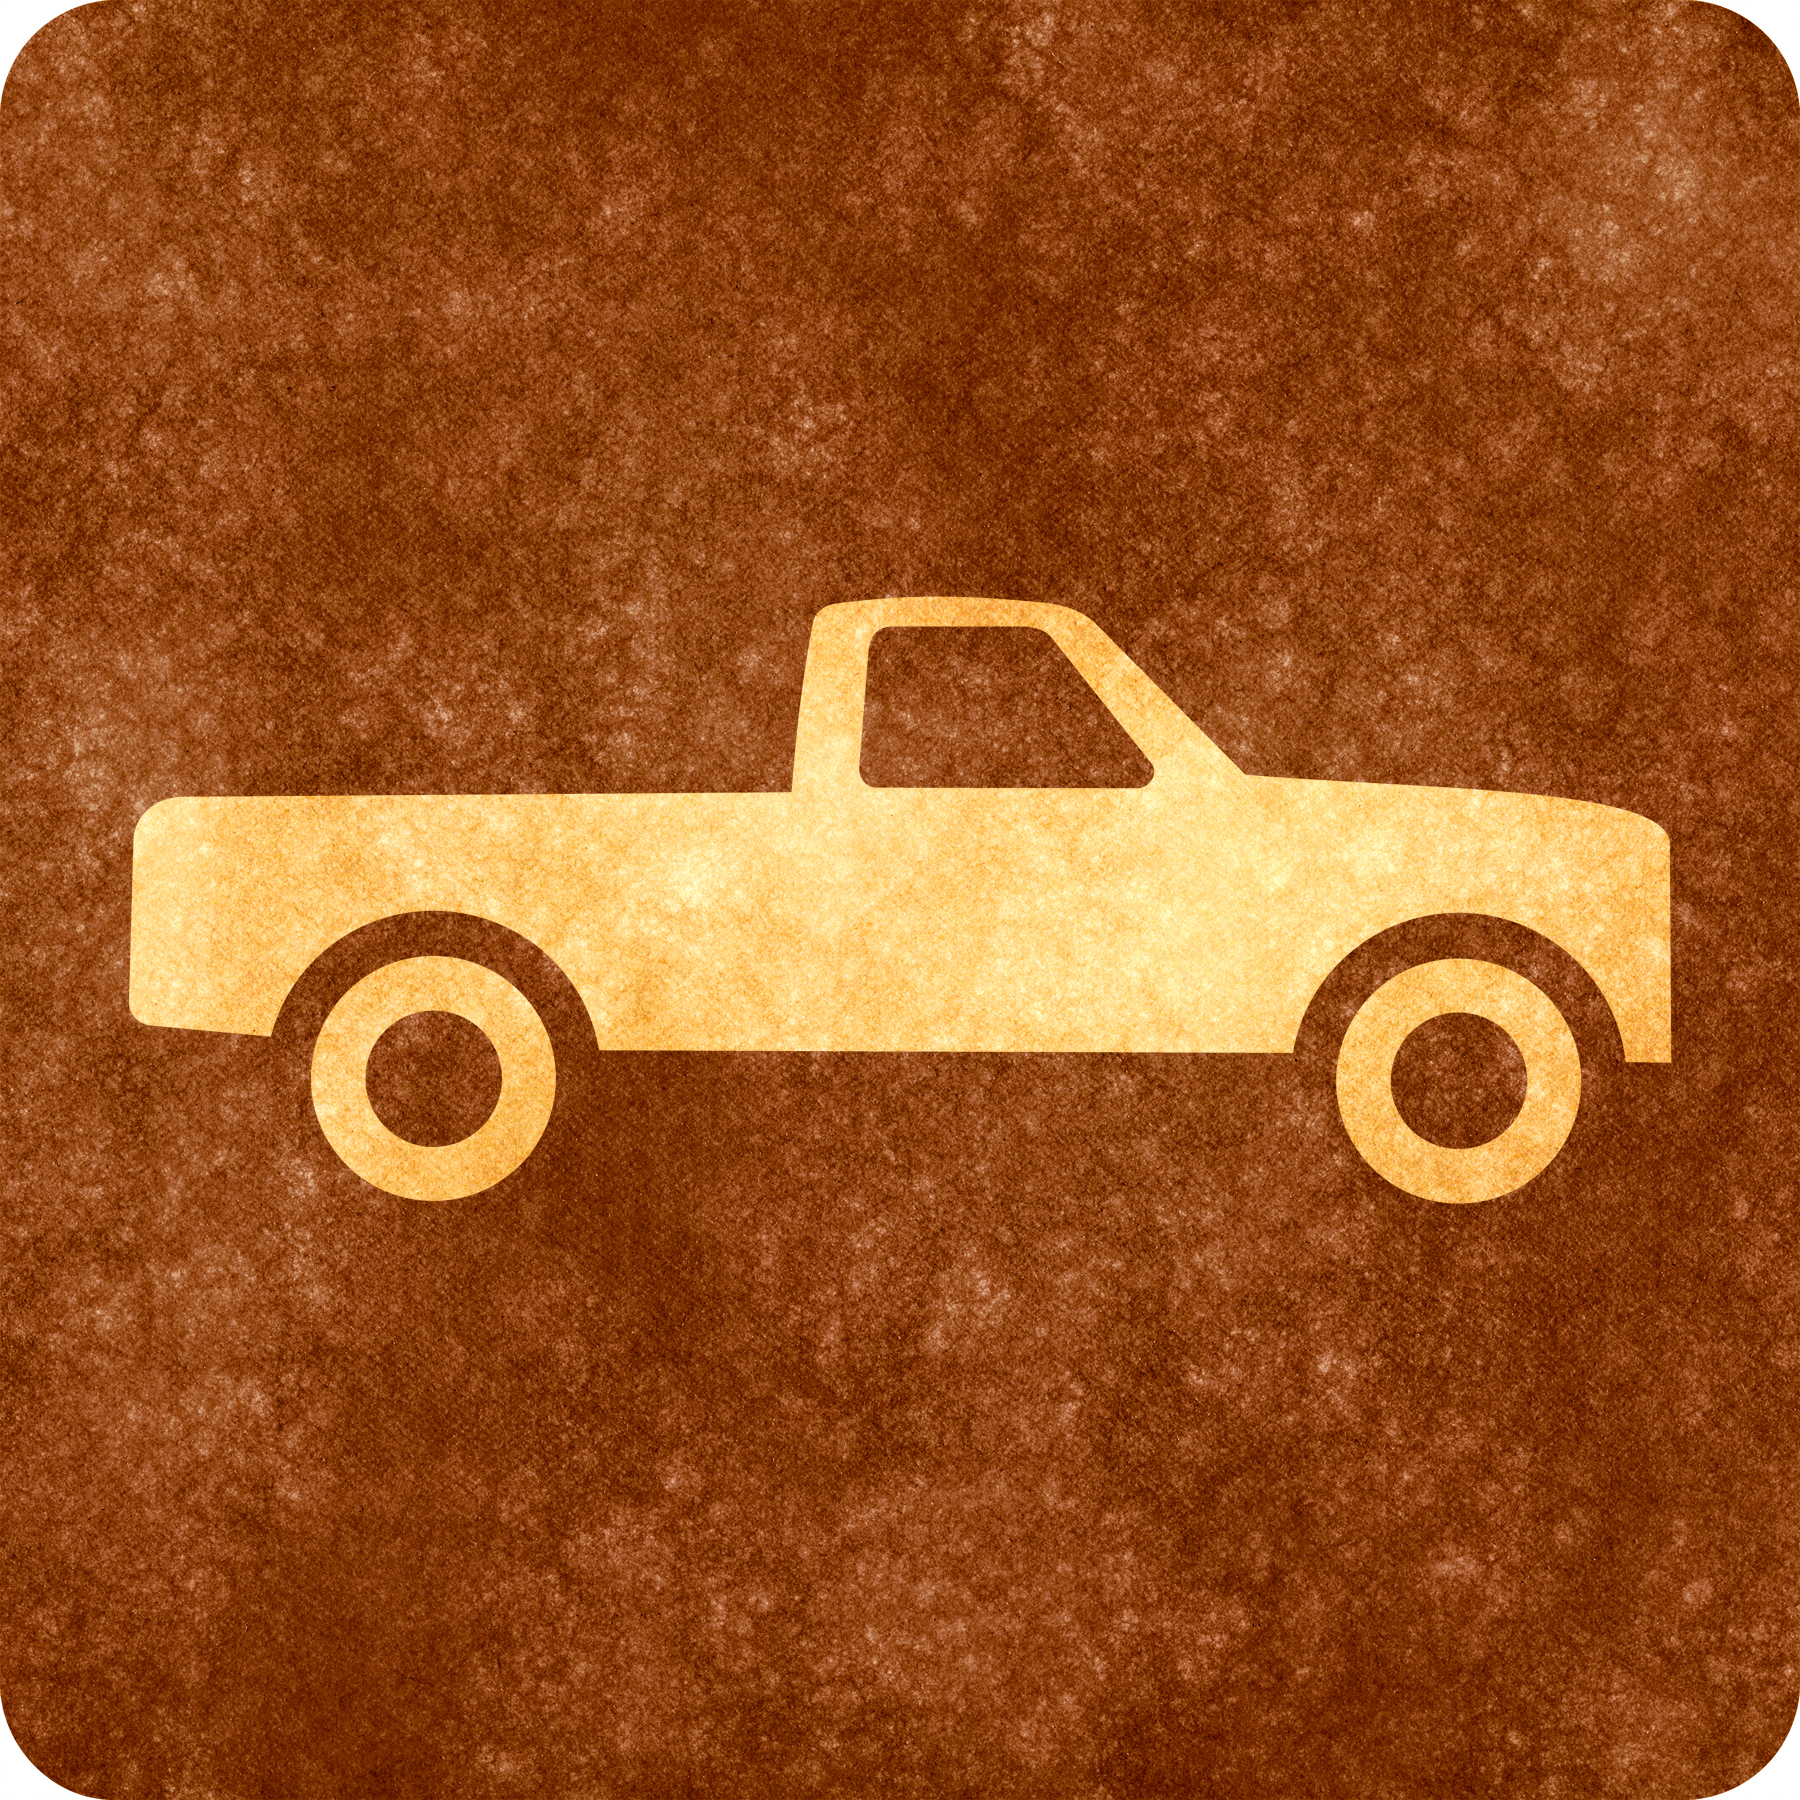 Sepia grunge sign - pick-up truck photo